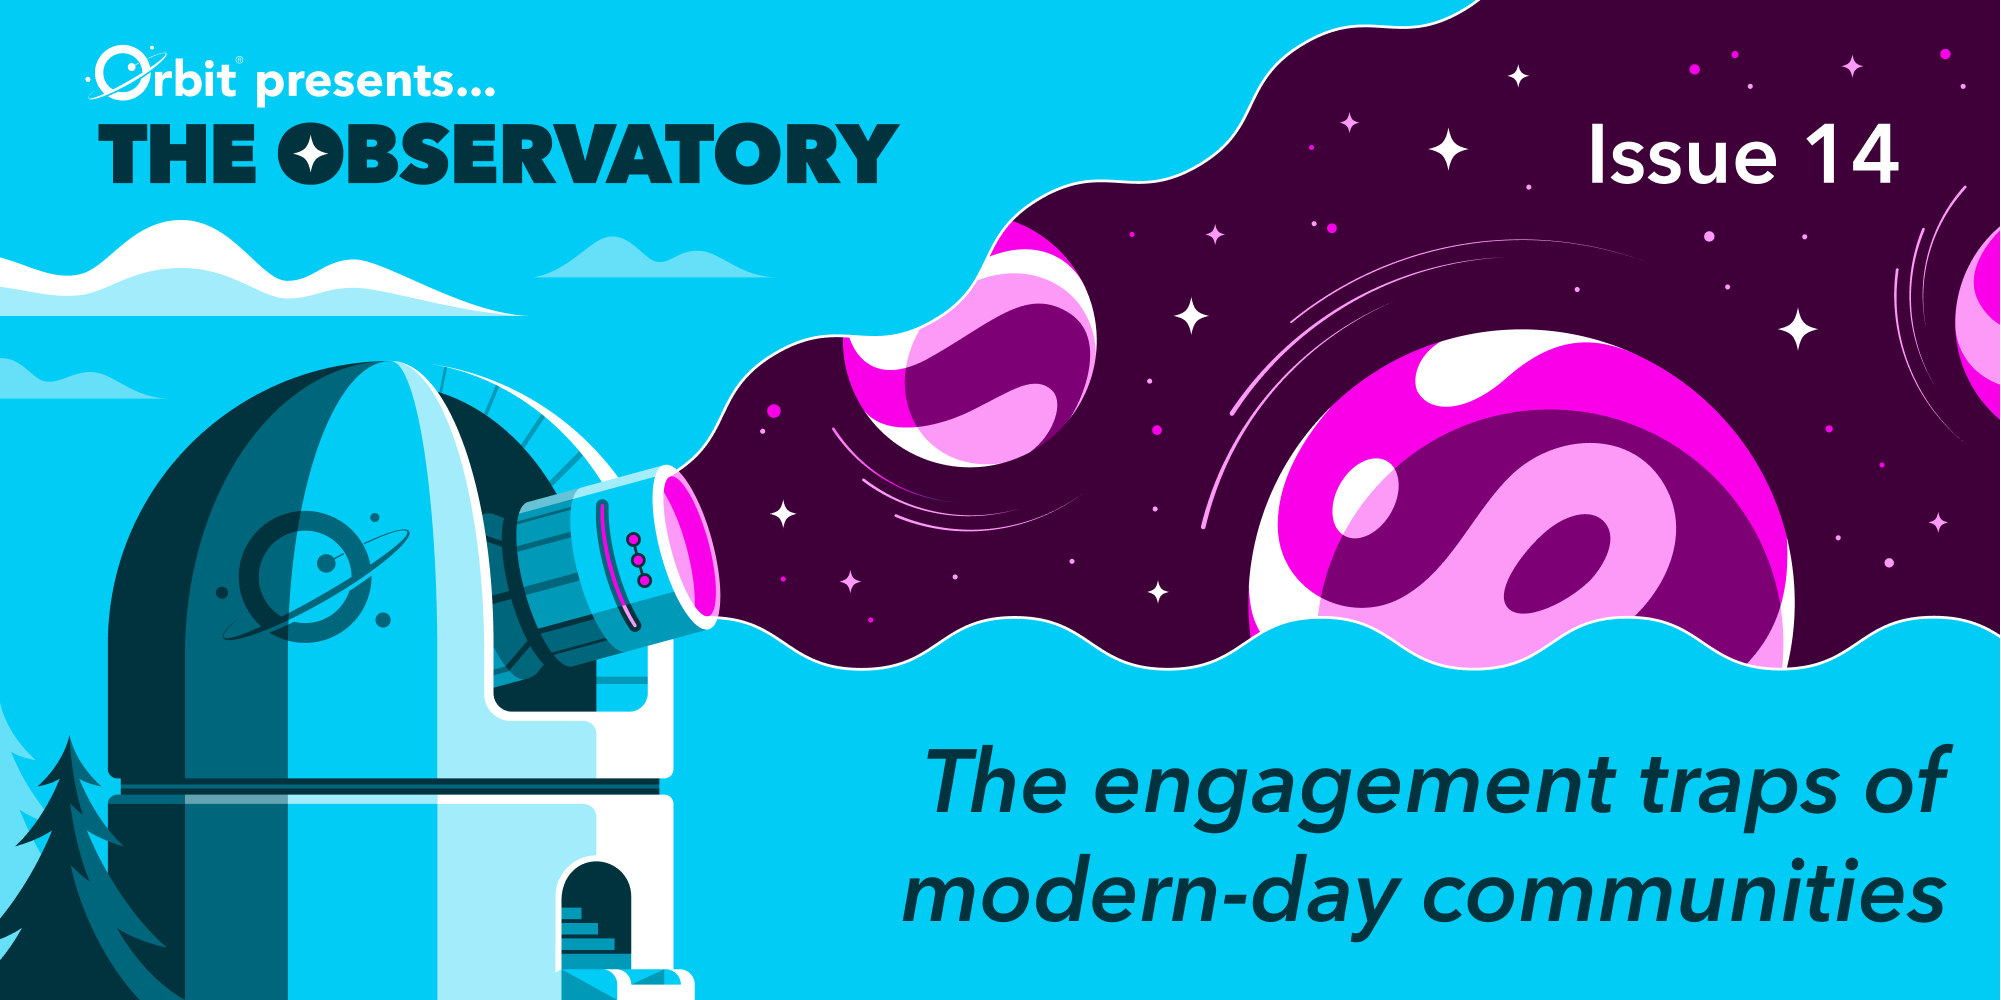 The engagement traps of modern-day communities